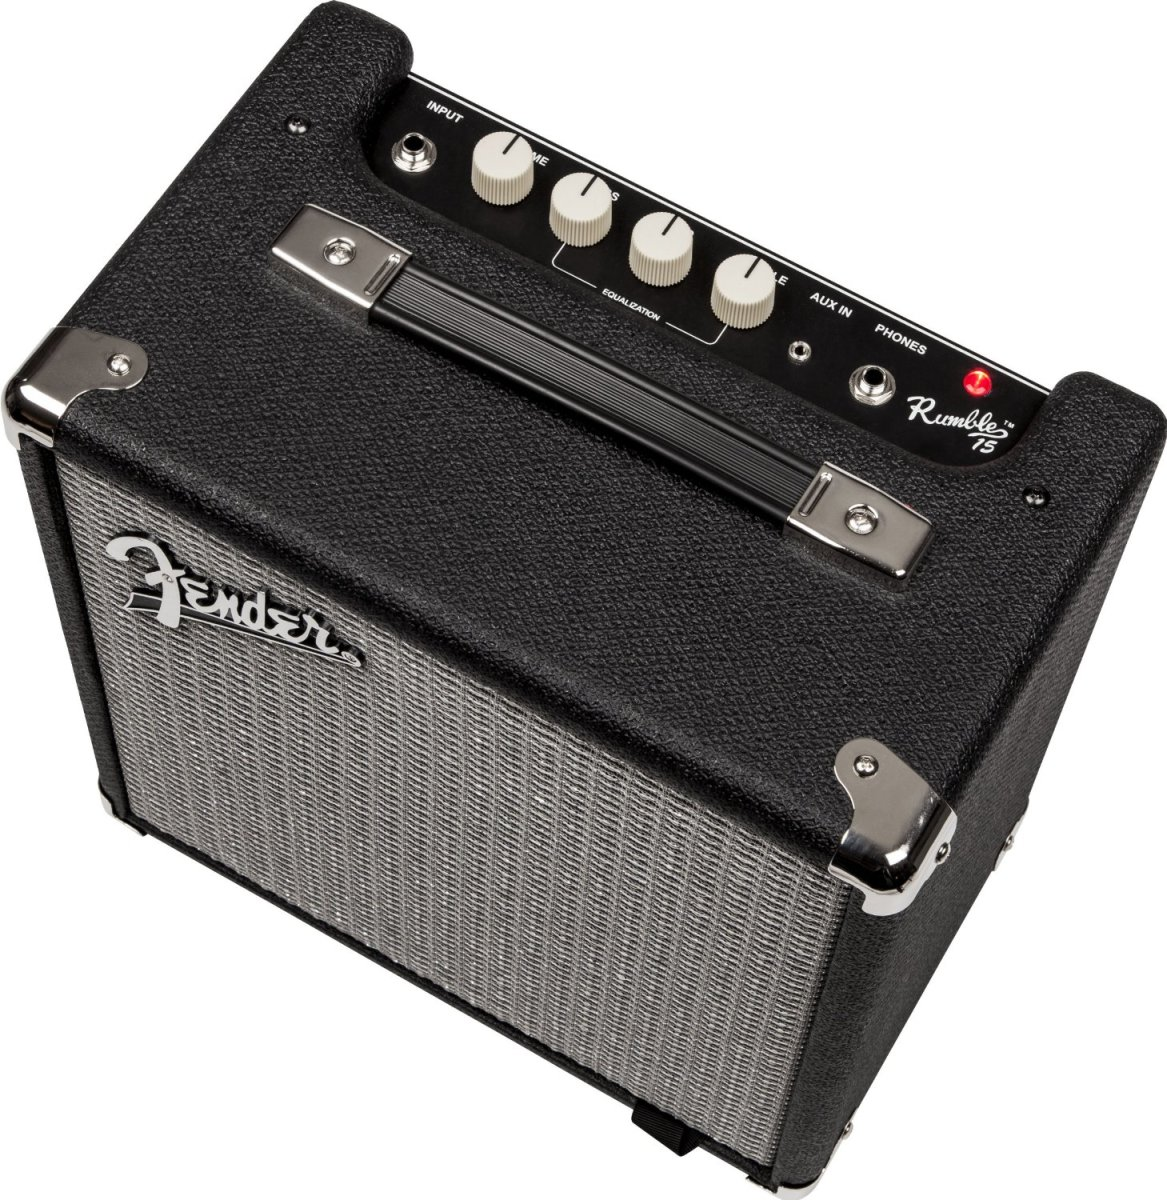 Review Of Fender Rumble 15 V3 Bass Practice Amp Spinditty Guitar Input Jack Wiring